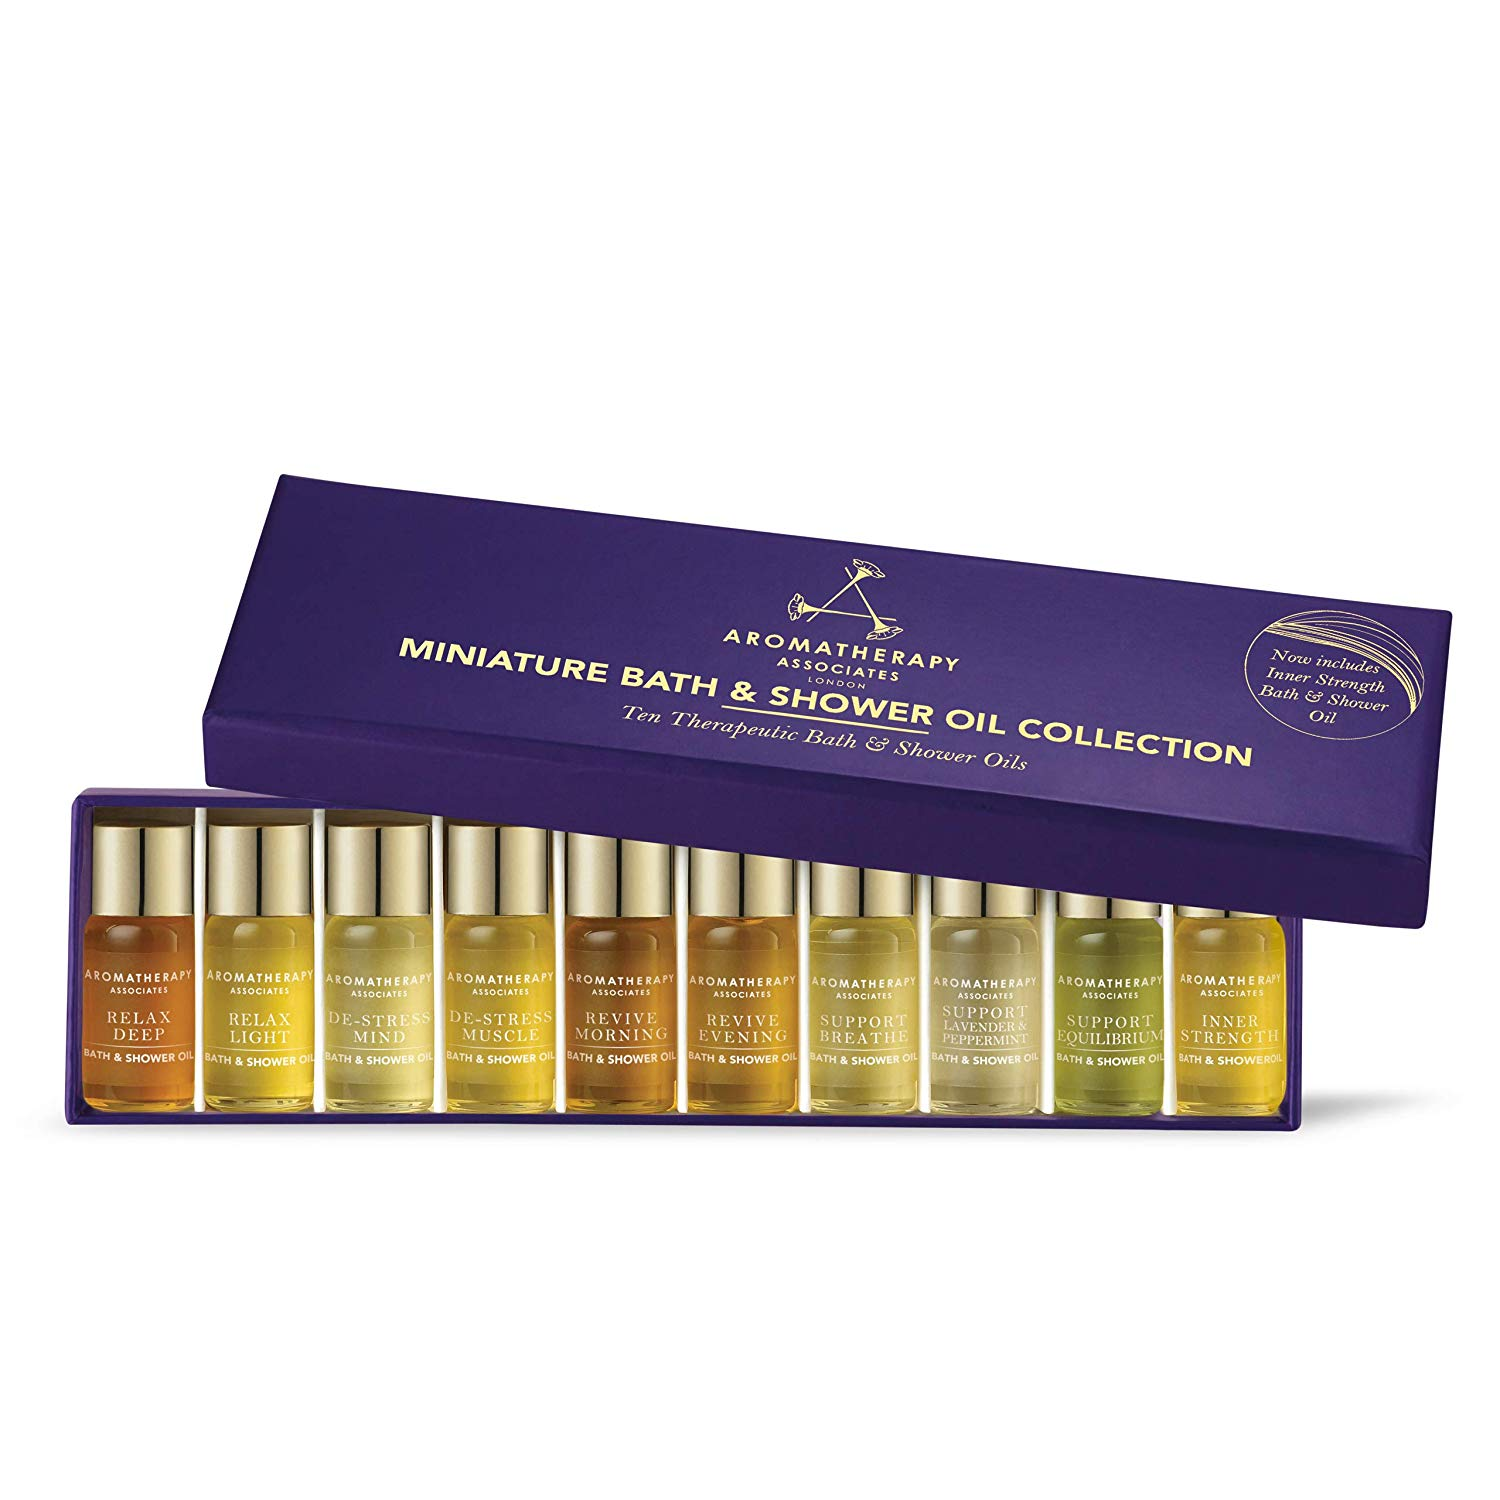 Aromatherapy Associates  | Miniature Bath And Shower Oil Collection |  $60.00